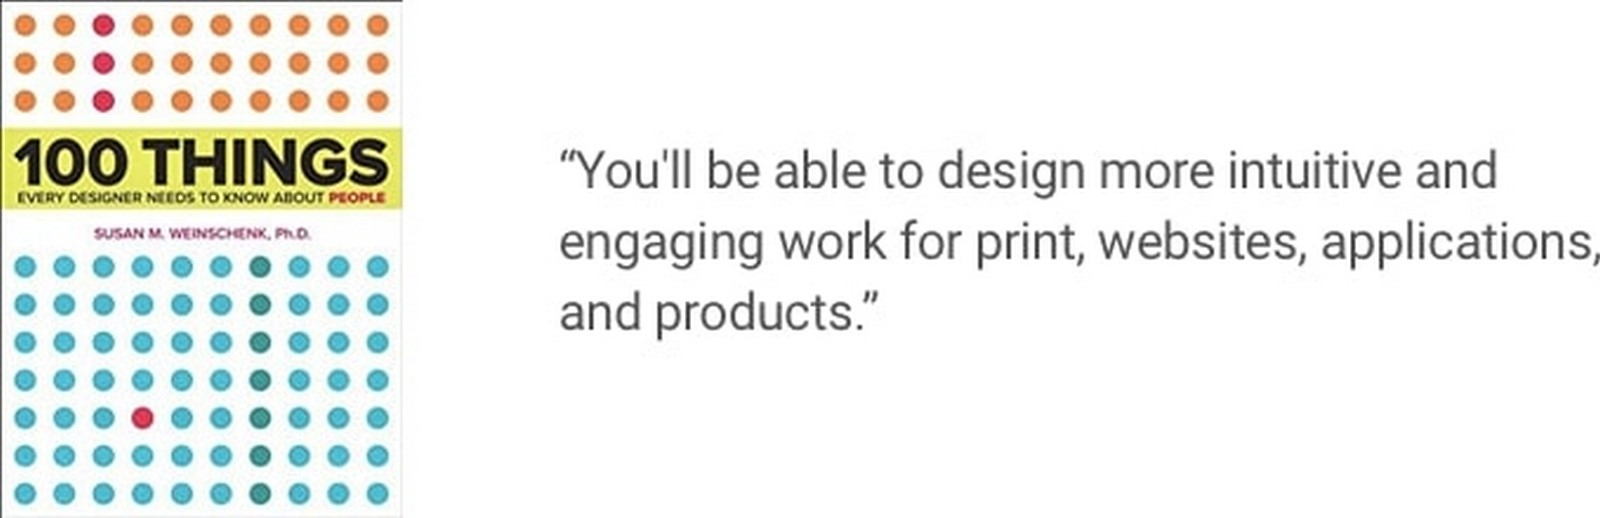 10 Books related to Product Design everyone should read Sheet15